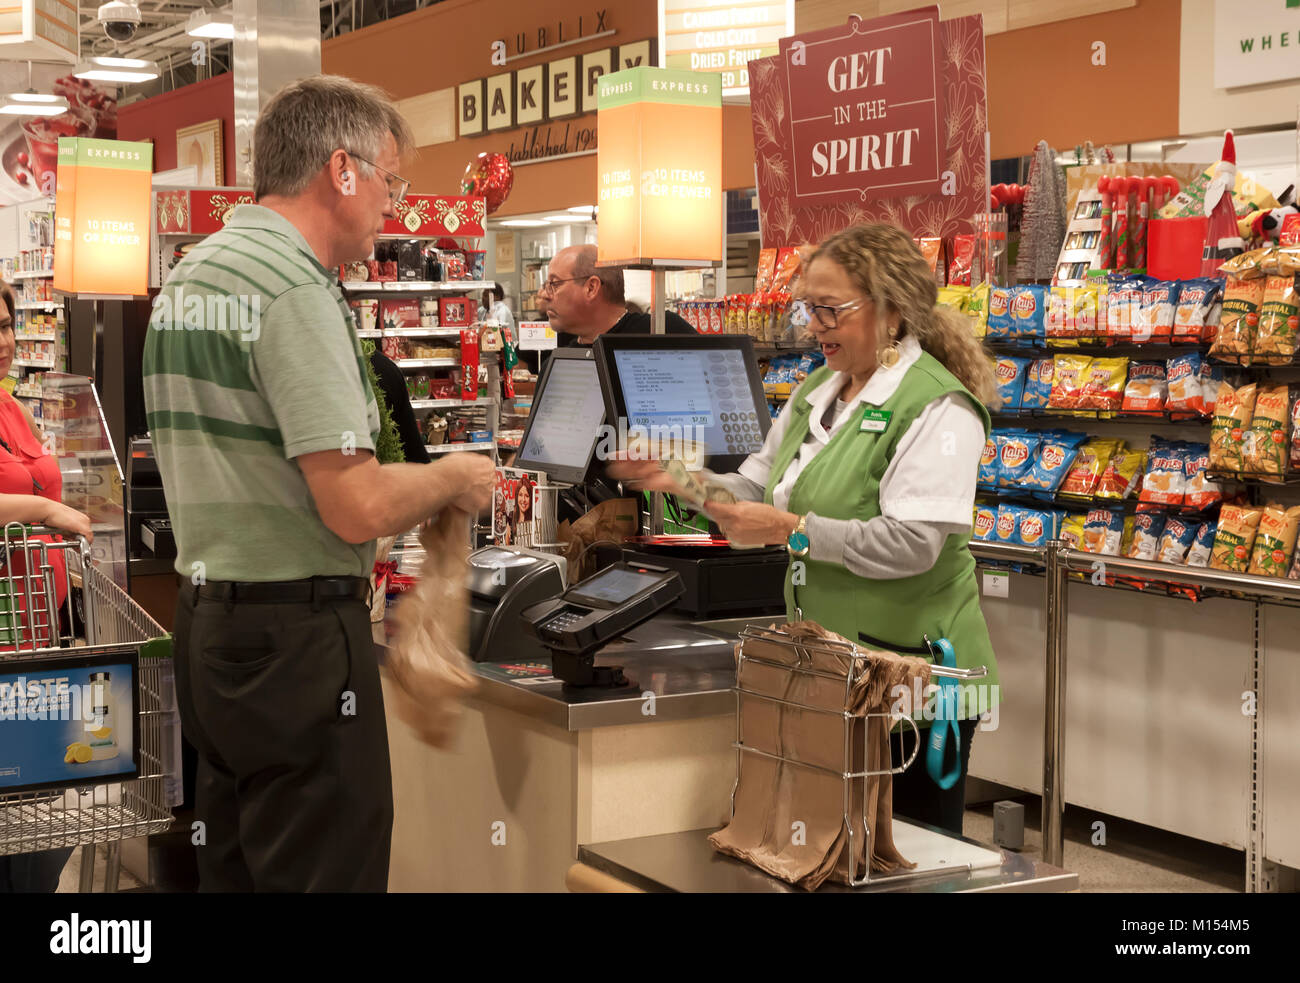 Supermarket cashier counting/handing change to a customer. - Stock Image